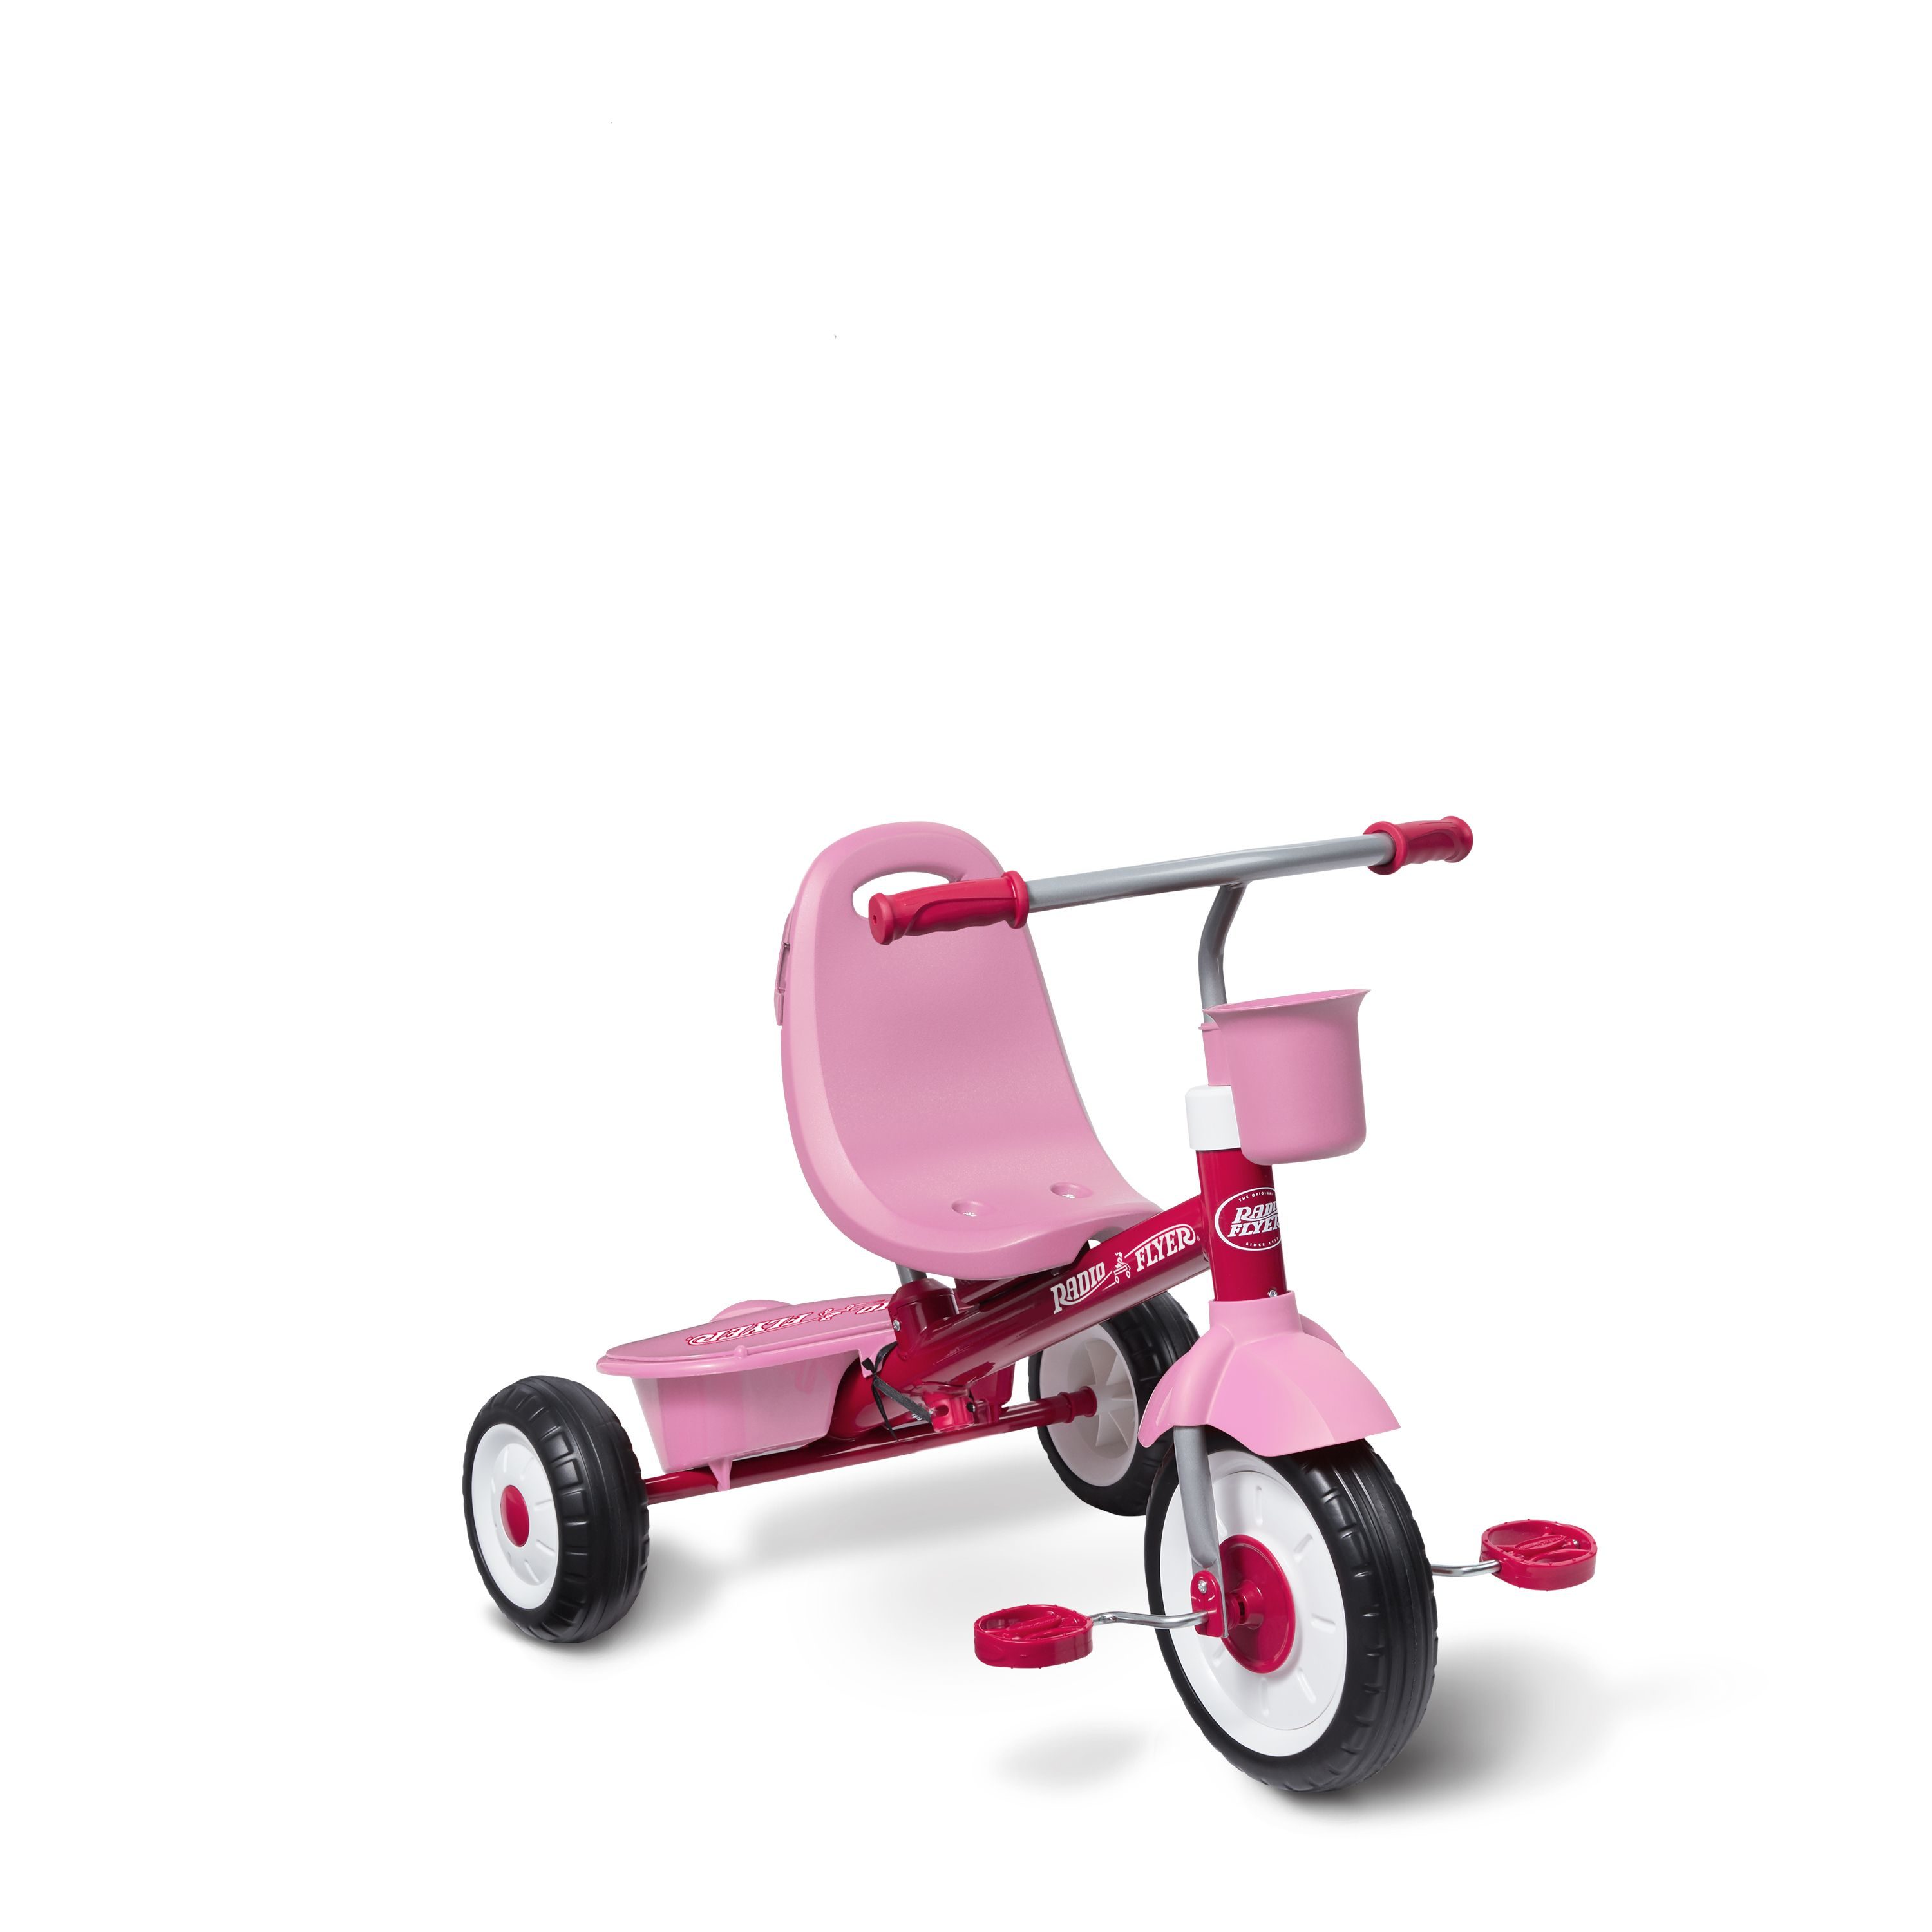 Radio Flyer, 4in1 Stroll 'n Trike, Grows with Child, Red